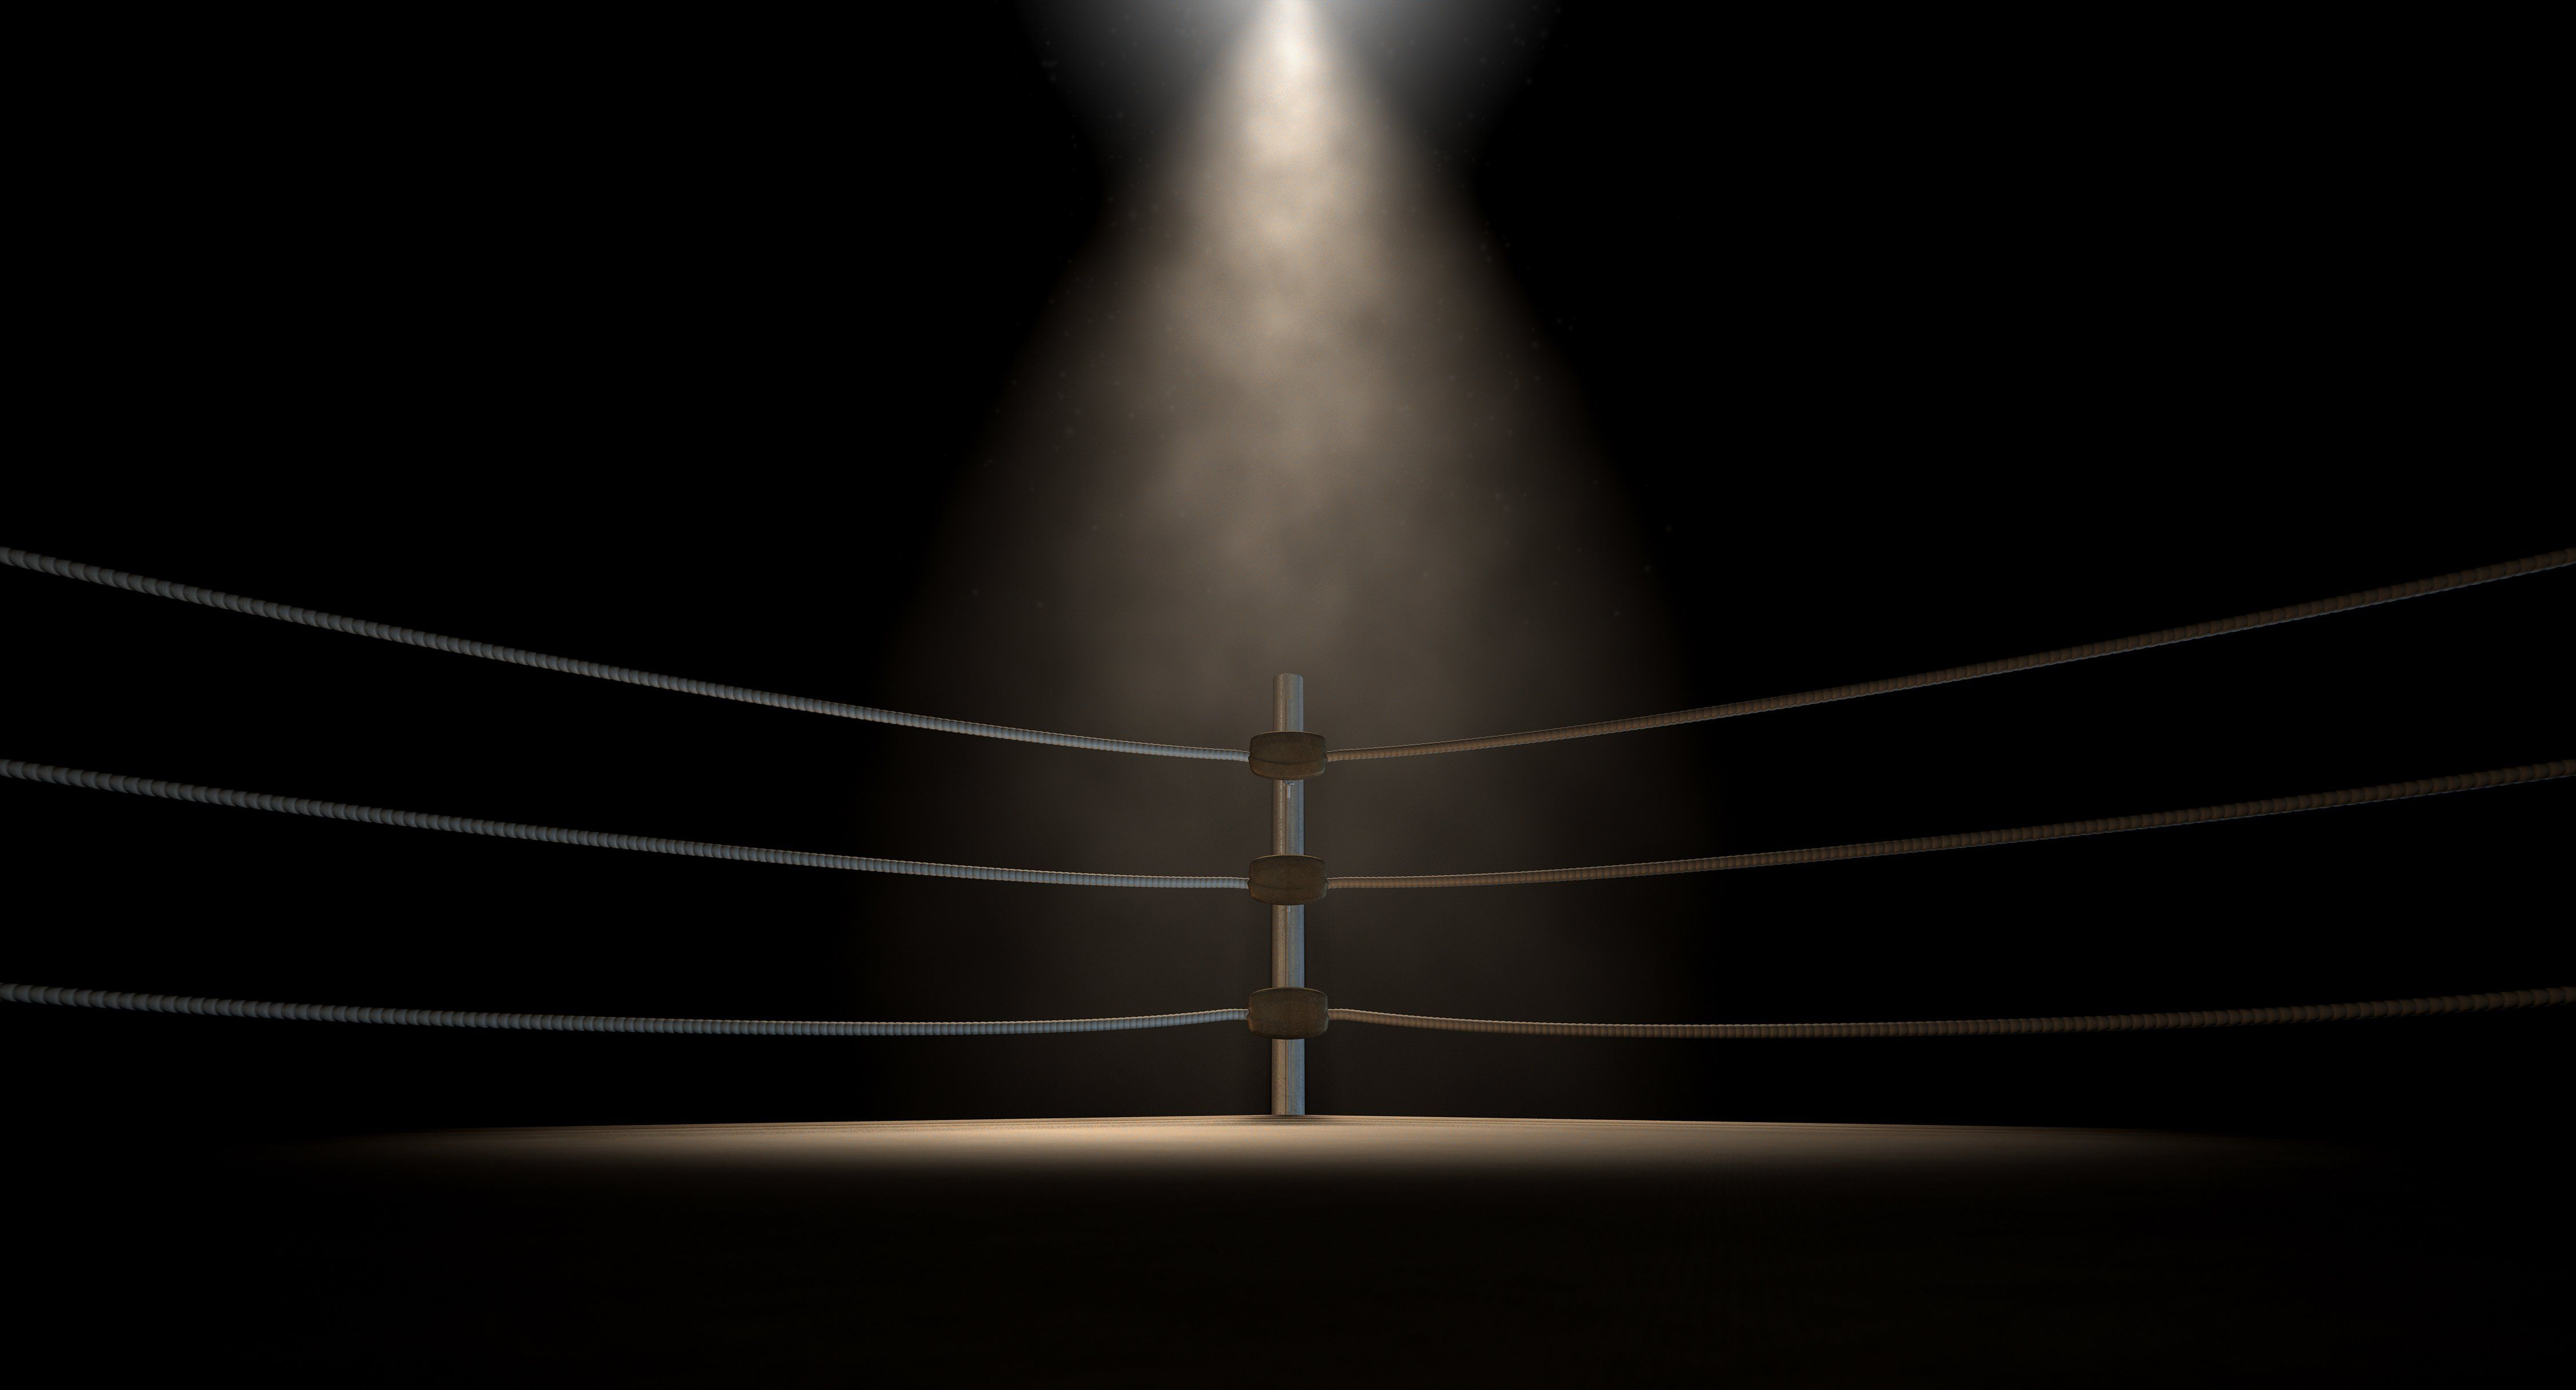 Boxing Ring Wallpapers Group boxing Wallpaper Hd